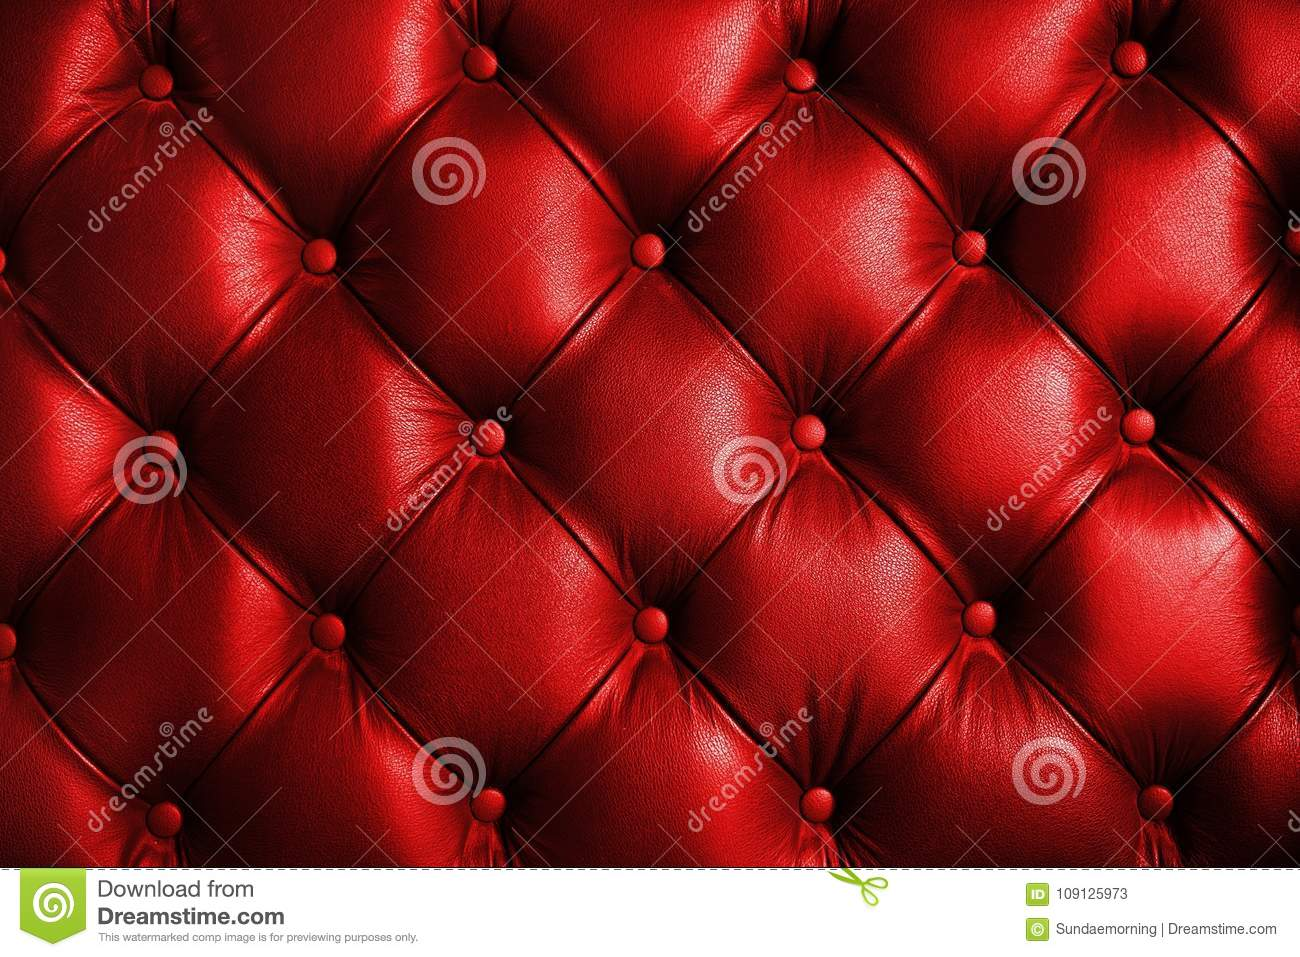 Saturated Glossy Red Leather Texture Of Sofa Chair Stock